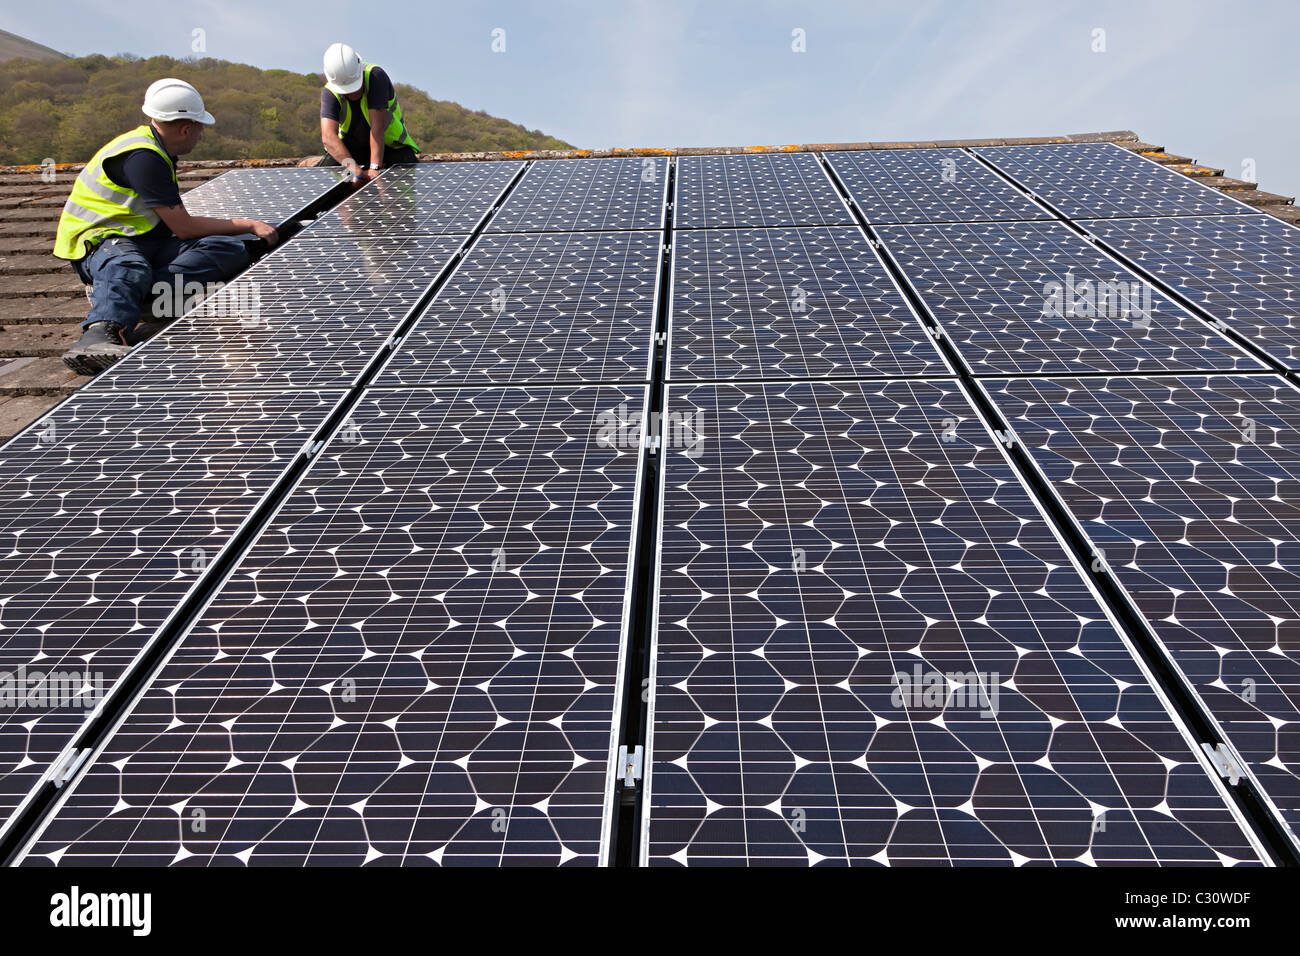 Fitting Solar Pv Panels To A House Roof Wales Uk Stock